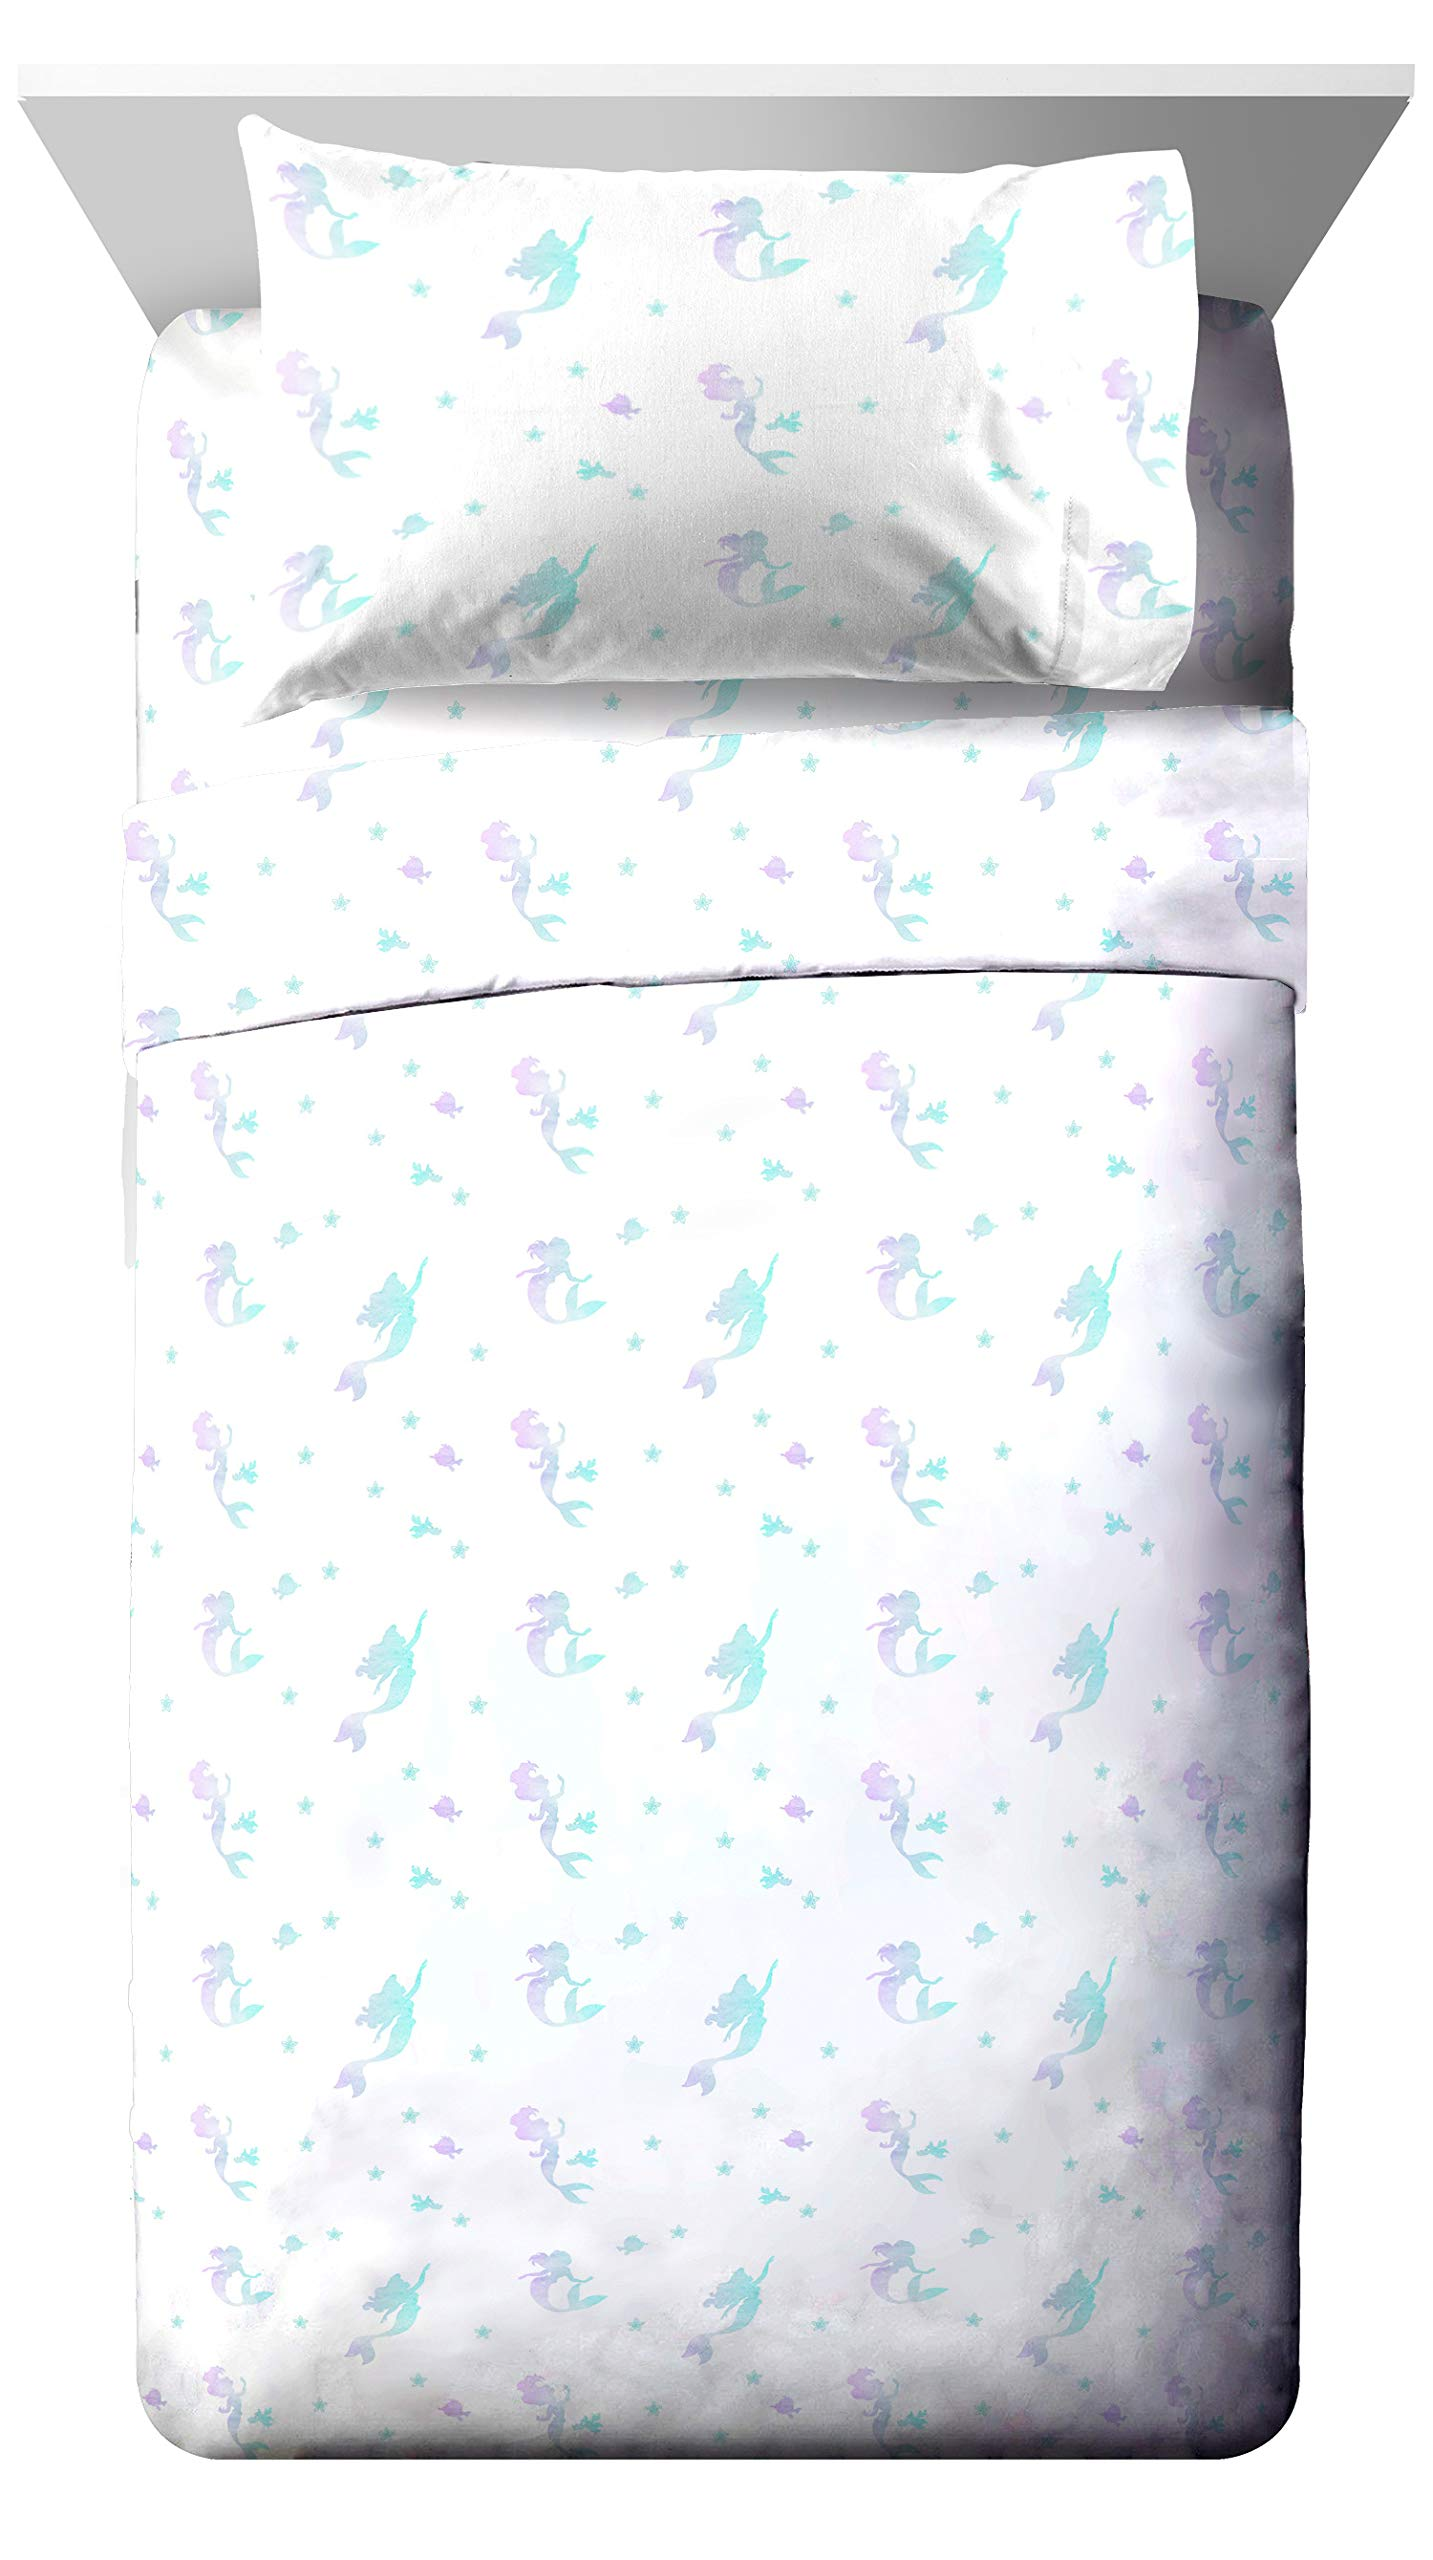 Jay Franco Disney Little Mermaid Make A Splash Full Sheet Set - 4 Piece Set Super Soft and Cozy Kid's Bedding Features Ariel - Fade Resistant Microfiber Sheets (Official Disney Product)